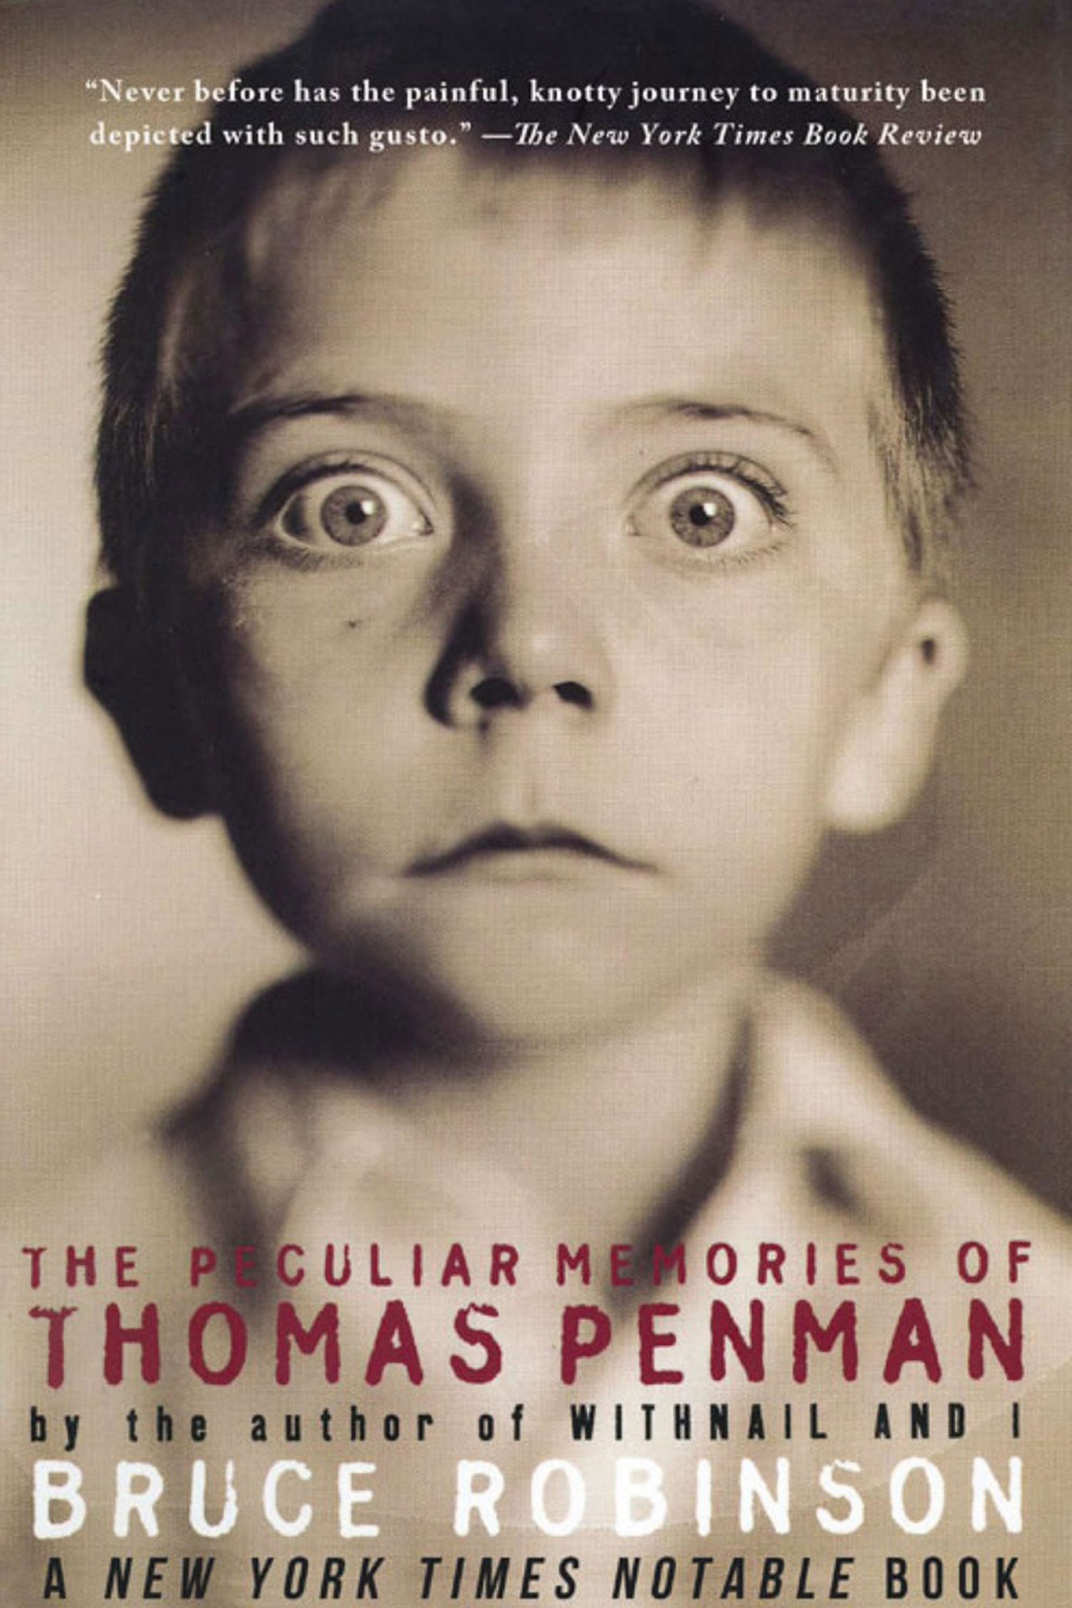 The Peculiar Memories of Thomas Penman by Bruce Robinson